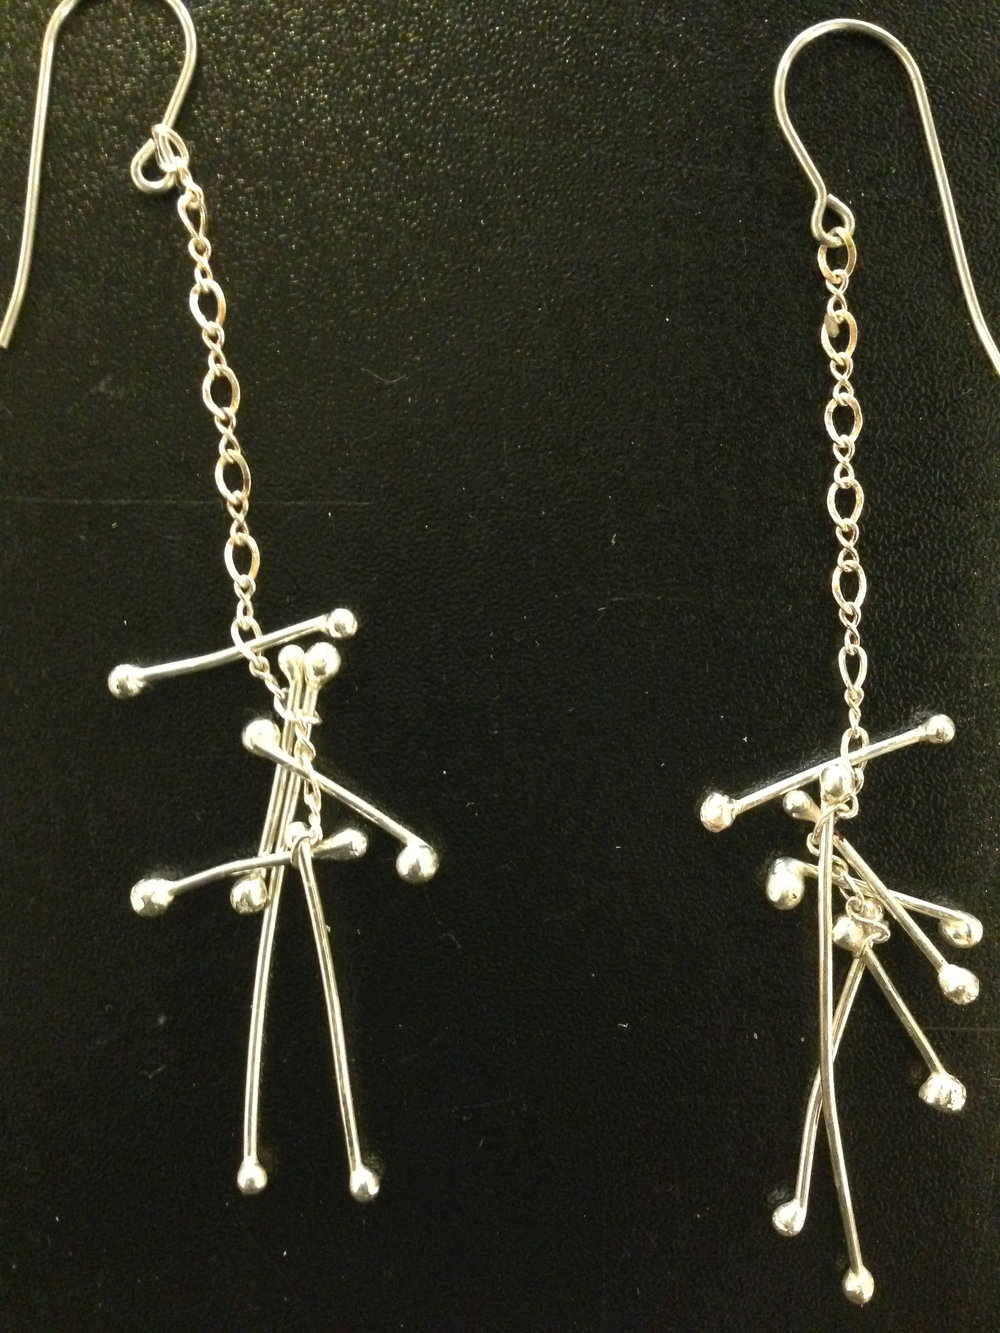 These are super fun light weight and all Sterling Silver... Ready to make a pair for YOU! $68